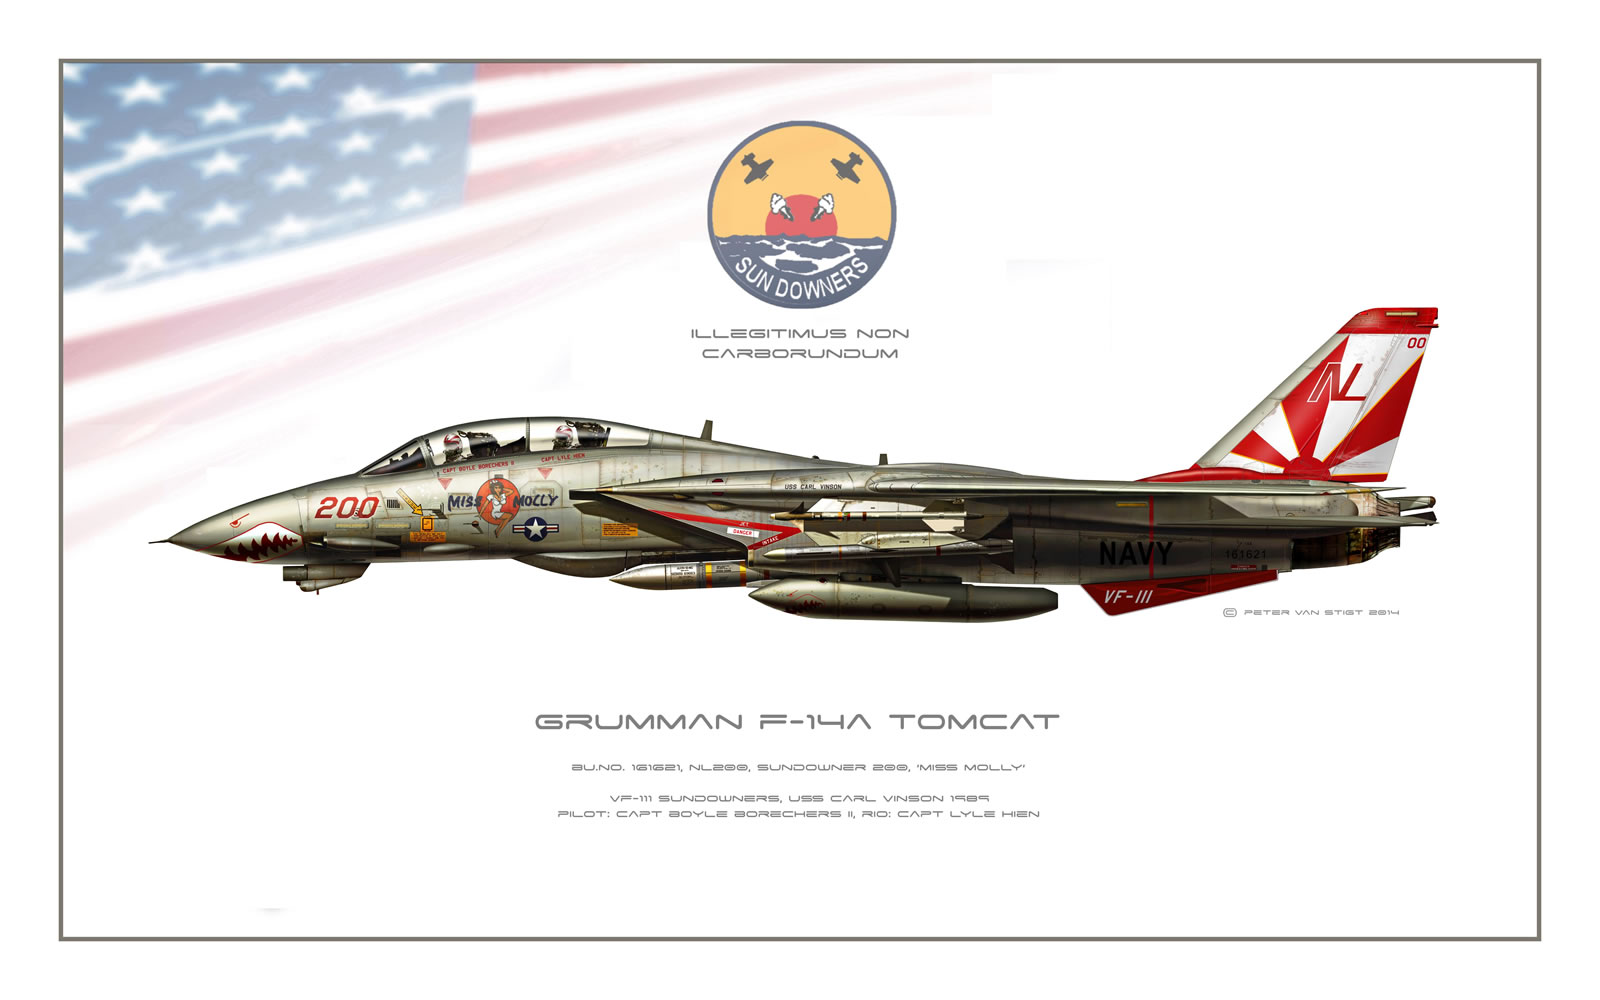 VF-111 Sundowners F-14 Tomcat Profile